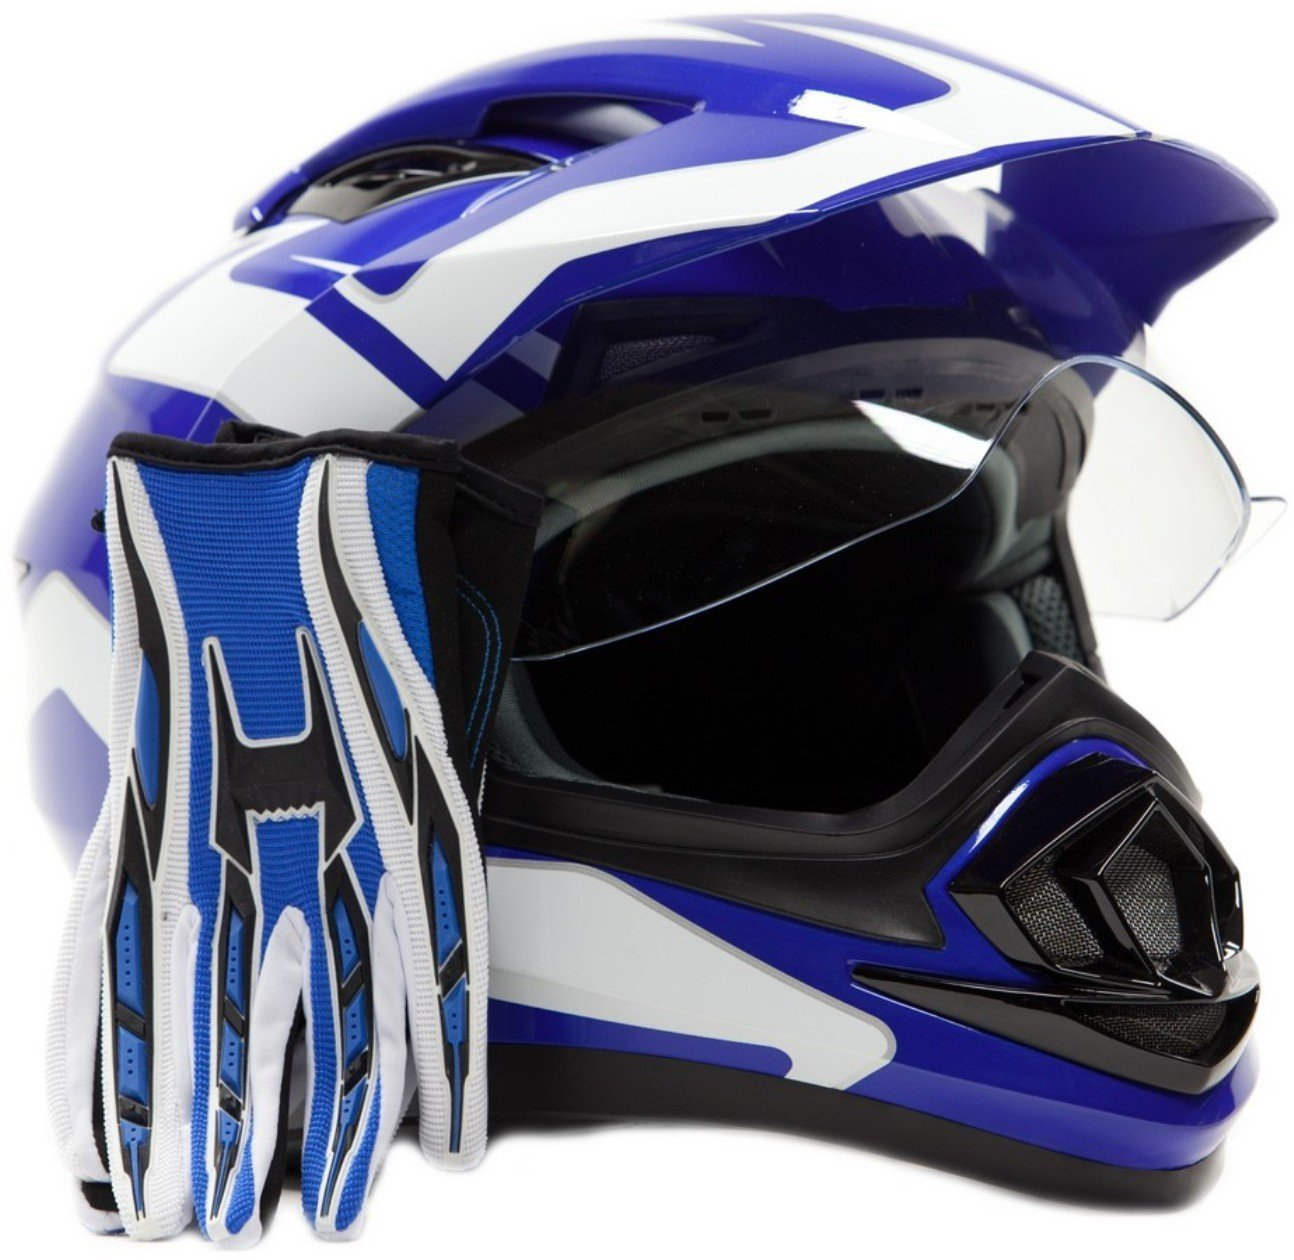 Dual Sport Helmet Combo w/Gloves - Off Road Motocross UTV ATV Motorcycle Enduro - Blue - Small